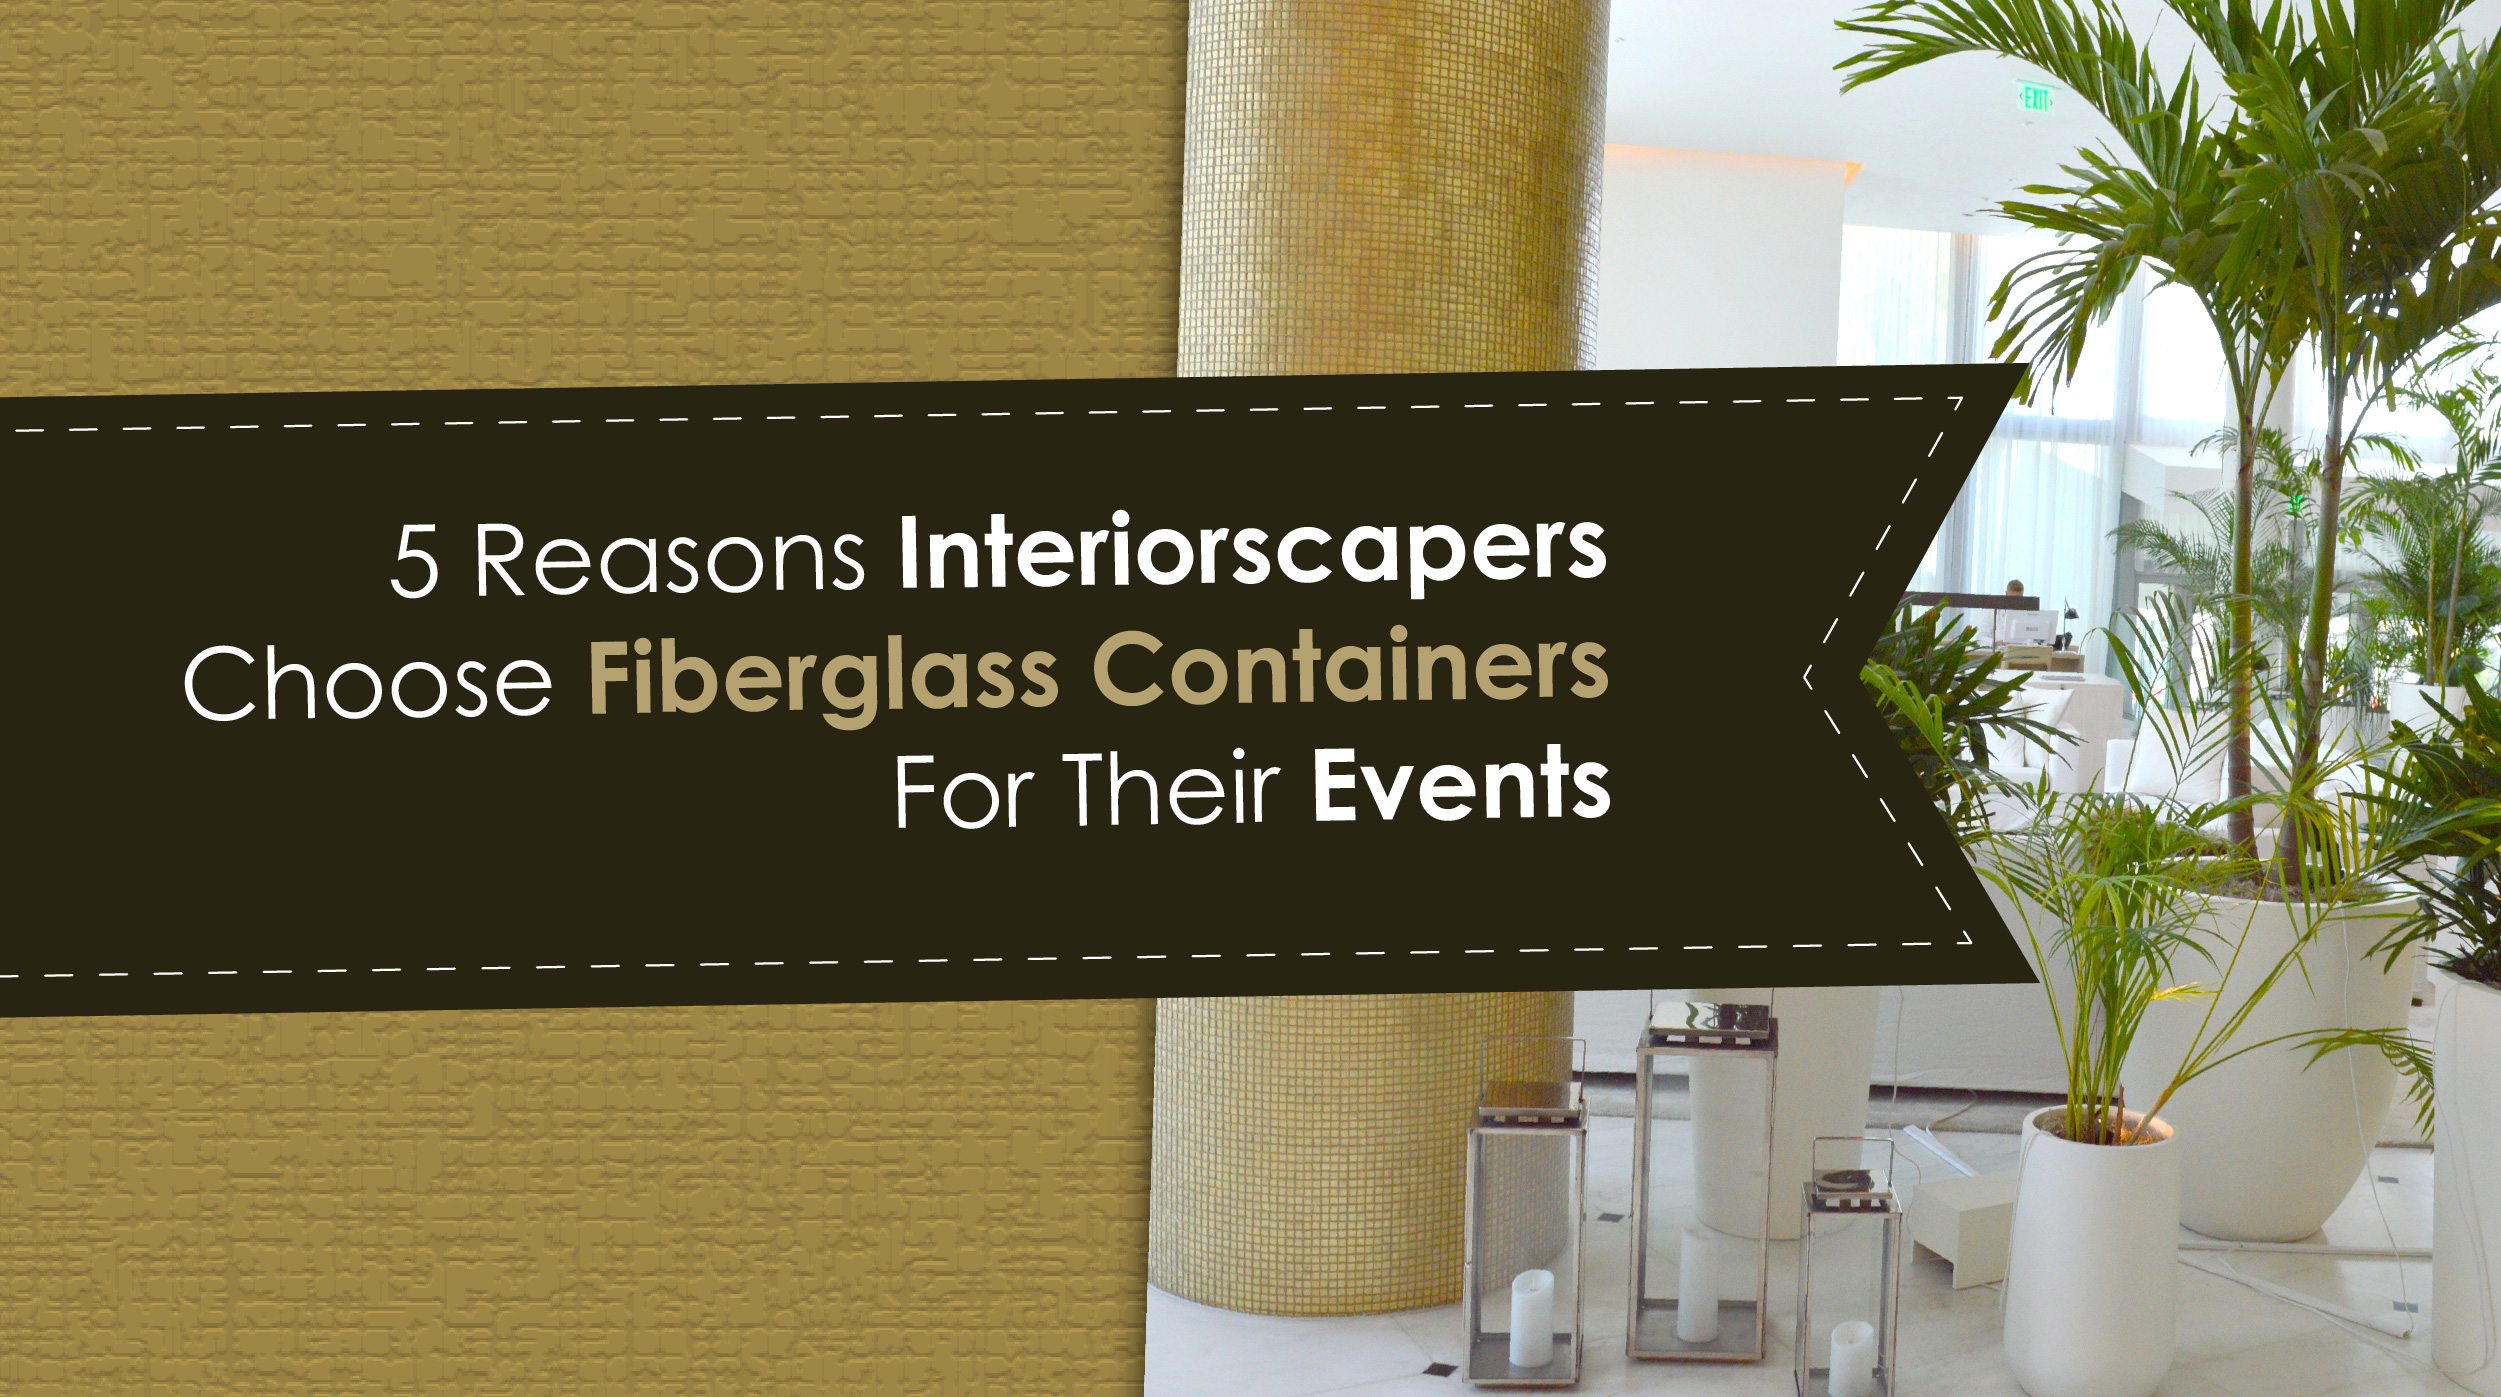 Interiorscapers Choose Fiberglass Containers for Their Events